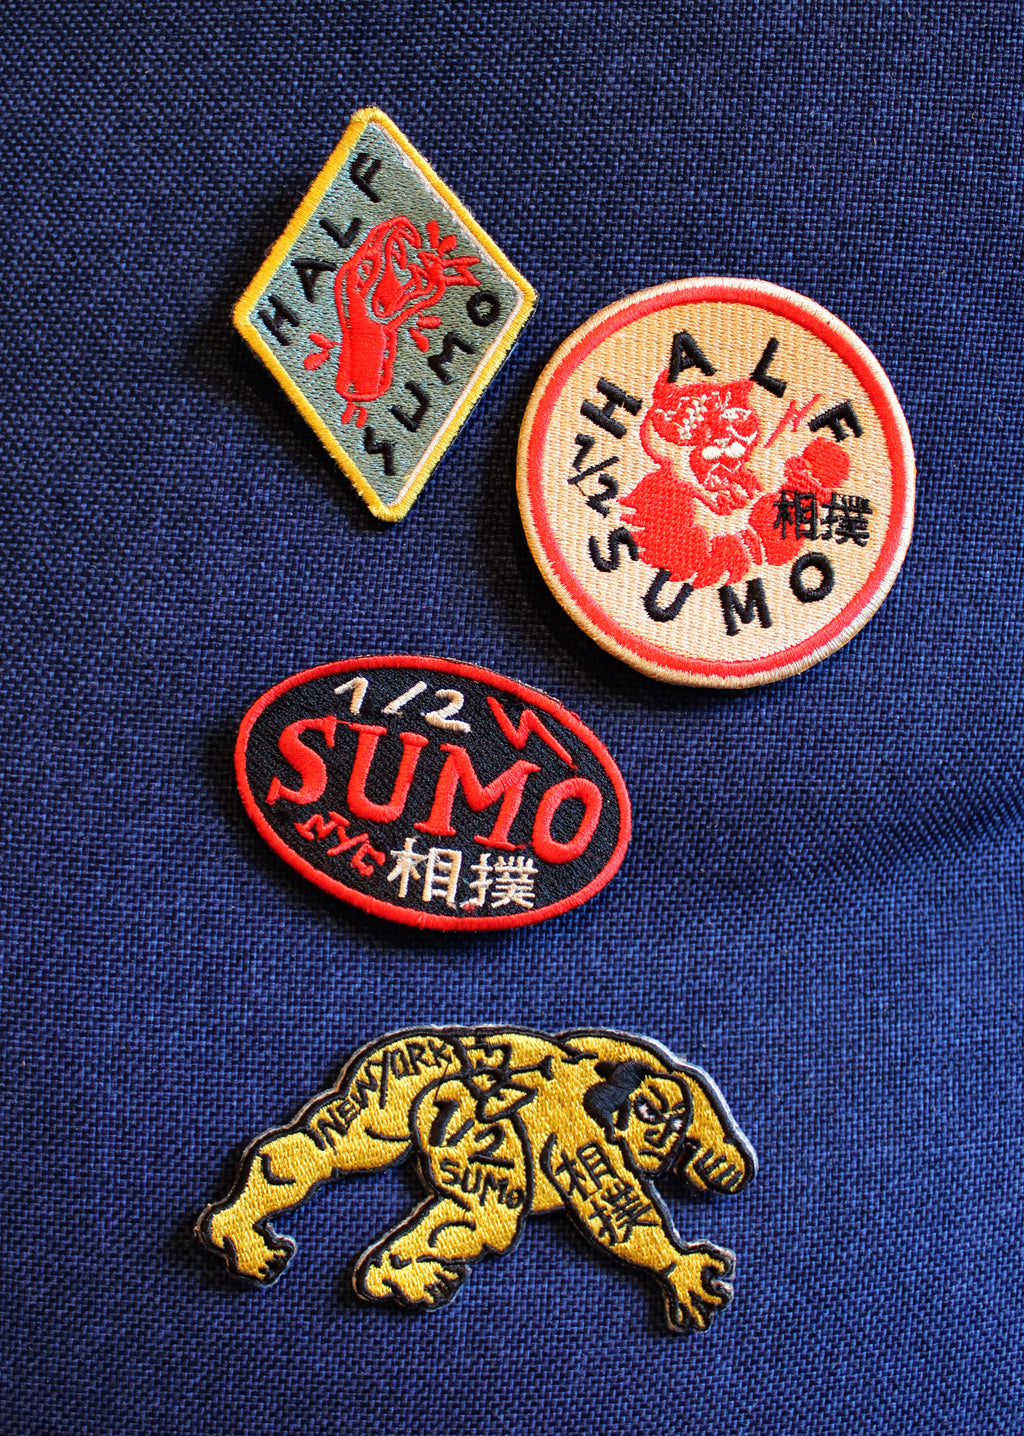 Half Sumo Patch Collection #1